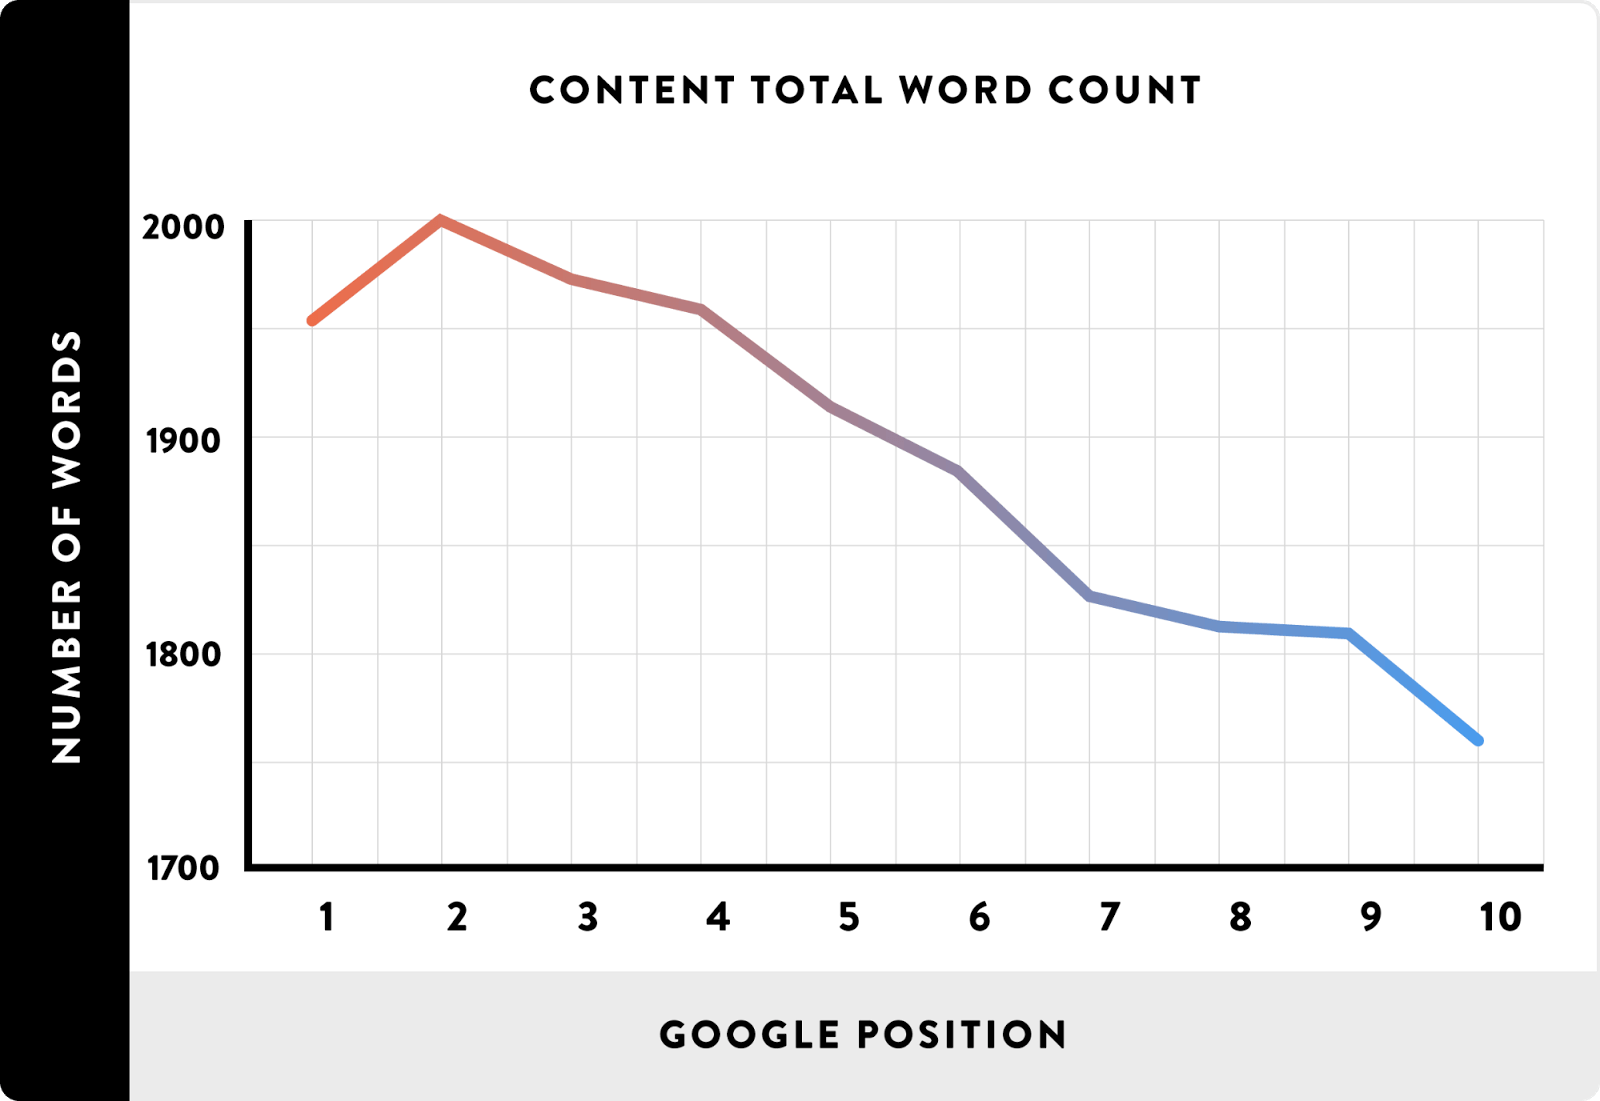 Correlation between Word Count and Ranking in Google